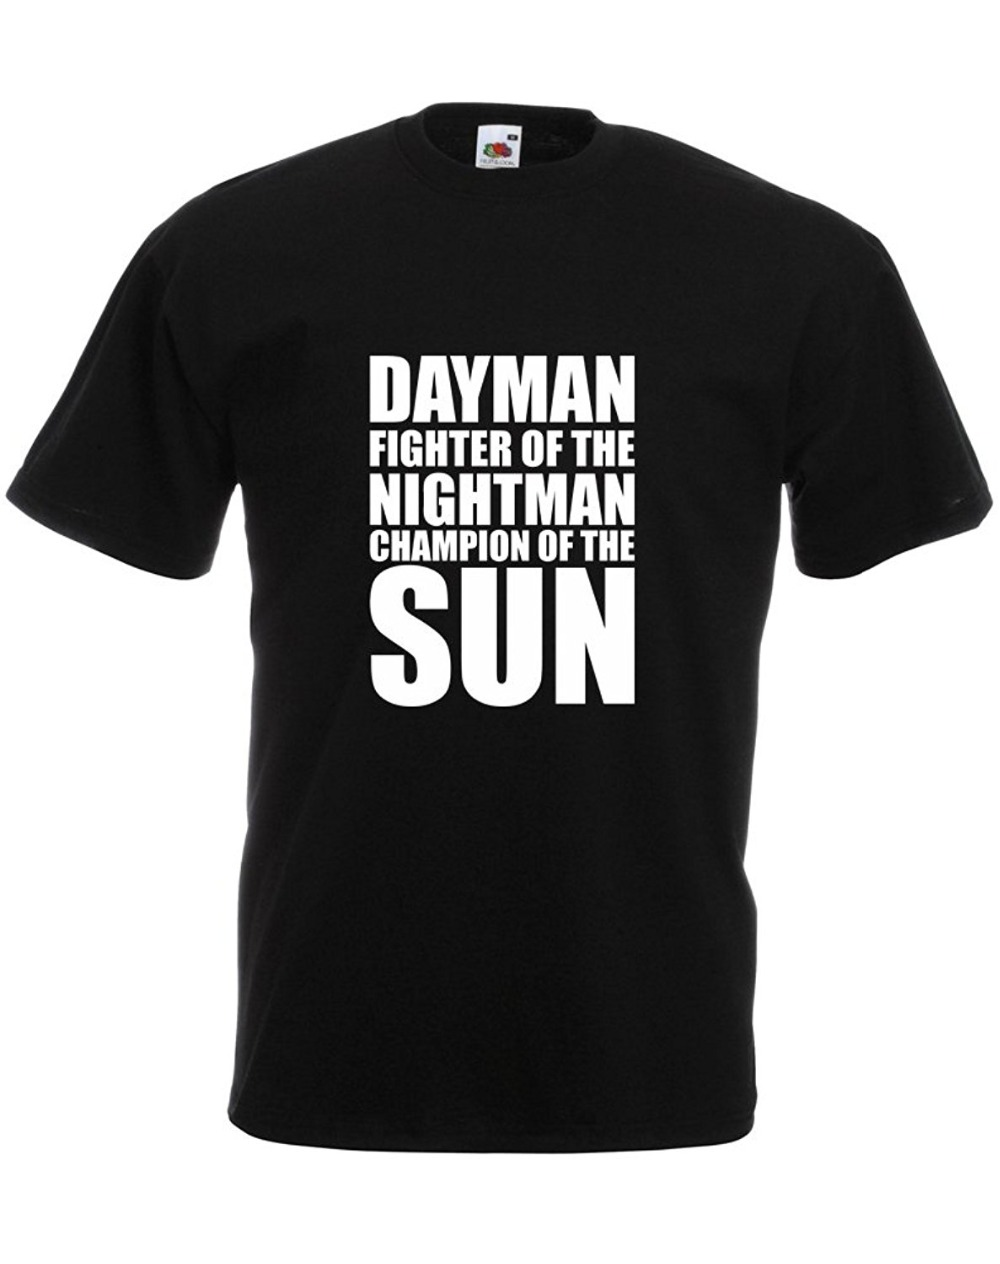 2018 Crossfit T Shirts Brand88-Dayman Fighter Of The Nightman, Mens Printed T-Shirt Short Sleeve Printed O-Neck Tee For Men